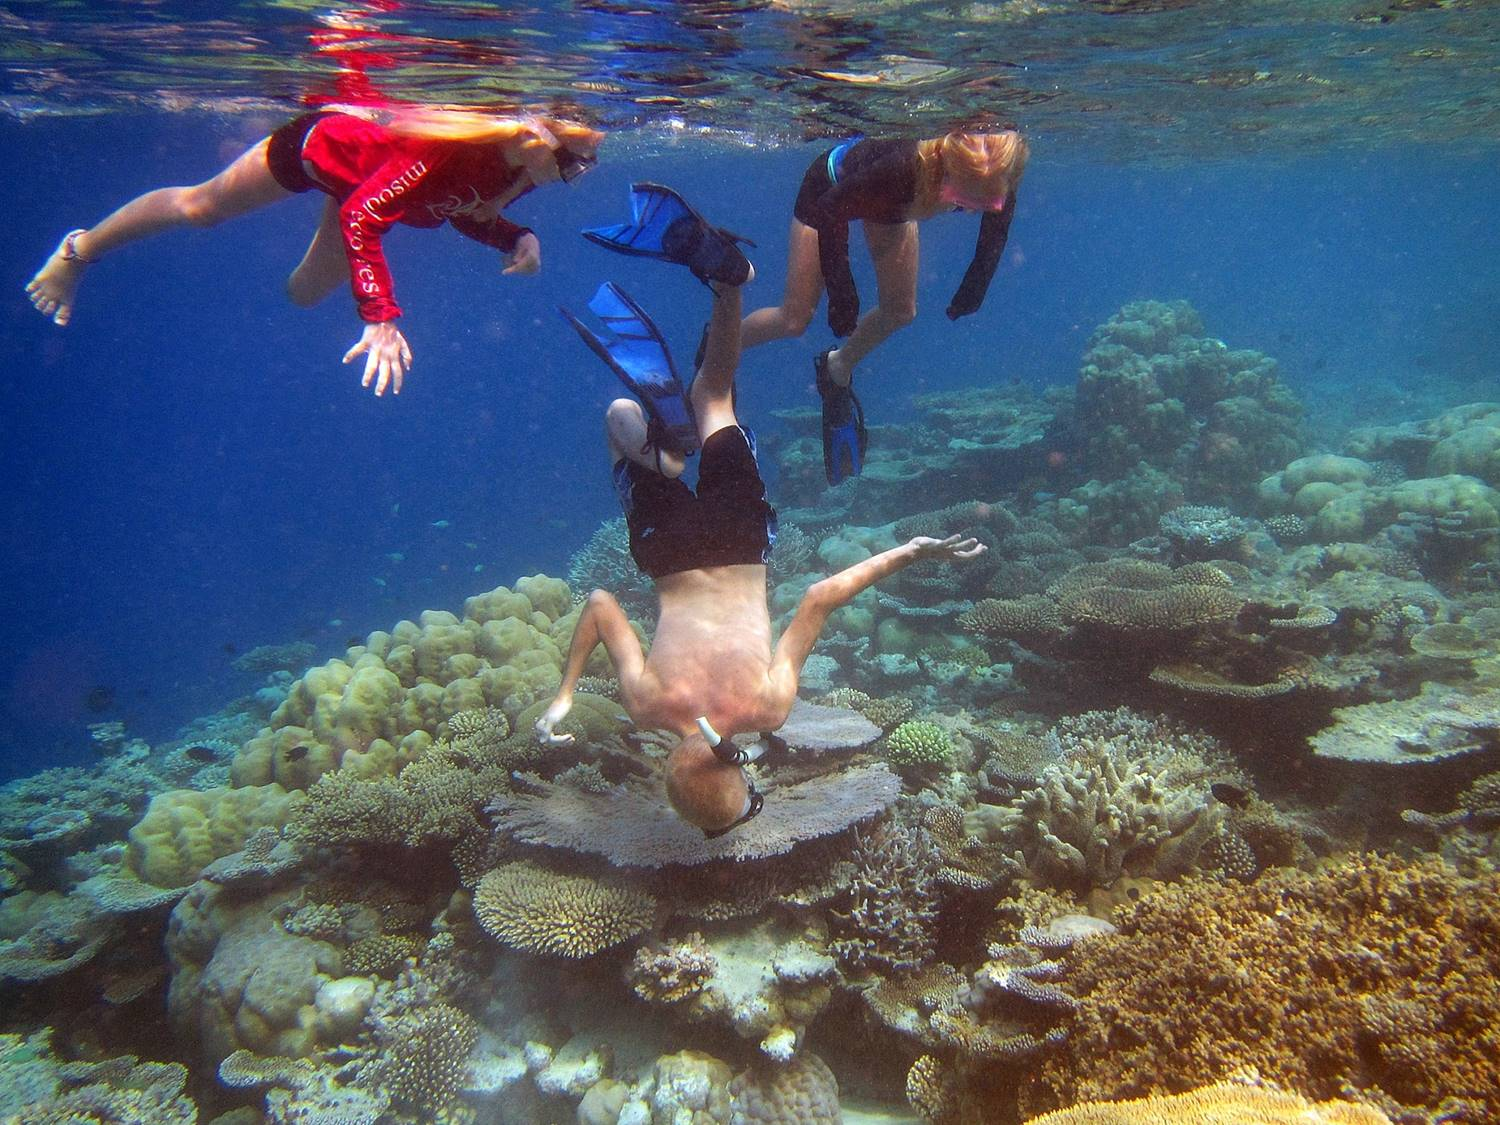 Kids check out a turtle under a coral head in Maldives - www.sailingtotem.com - 'On the Wind' Sailing Podcast: Episode #175